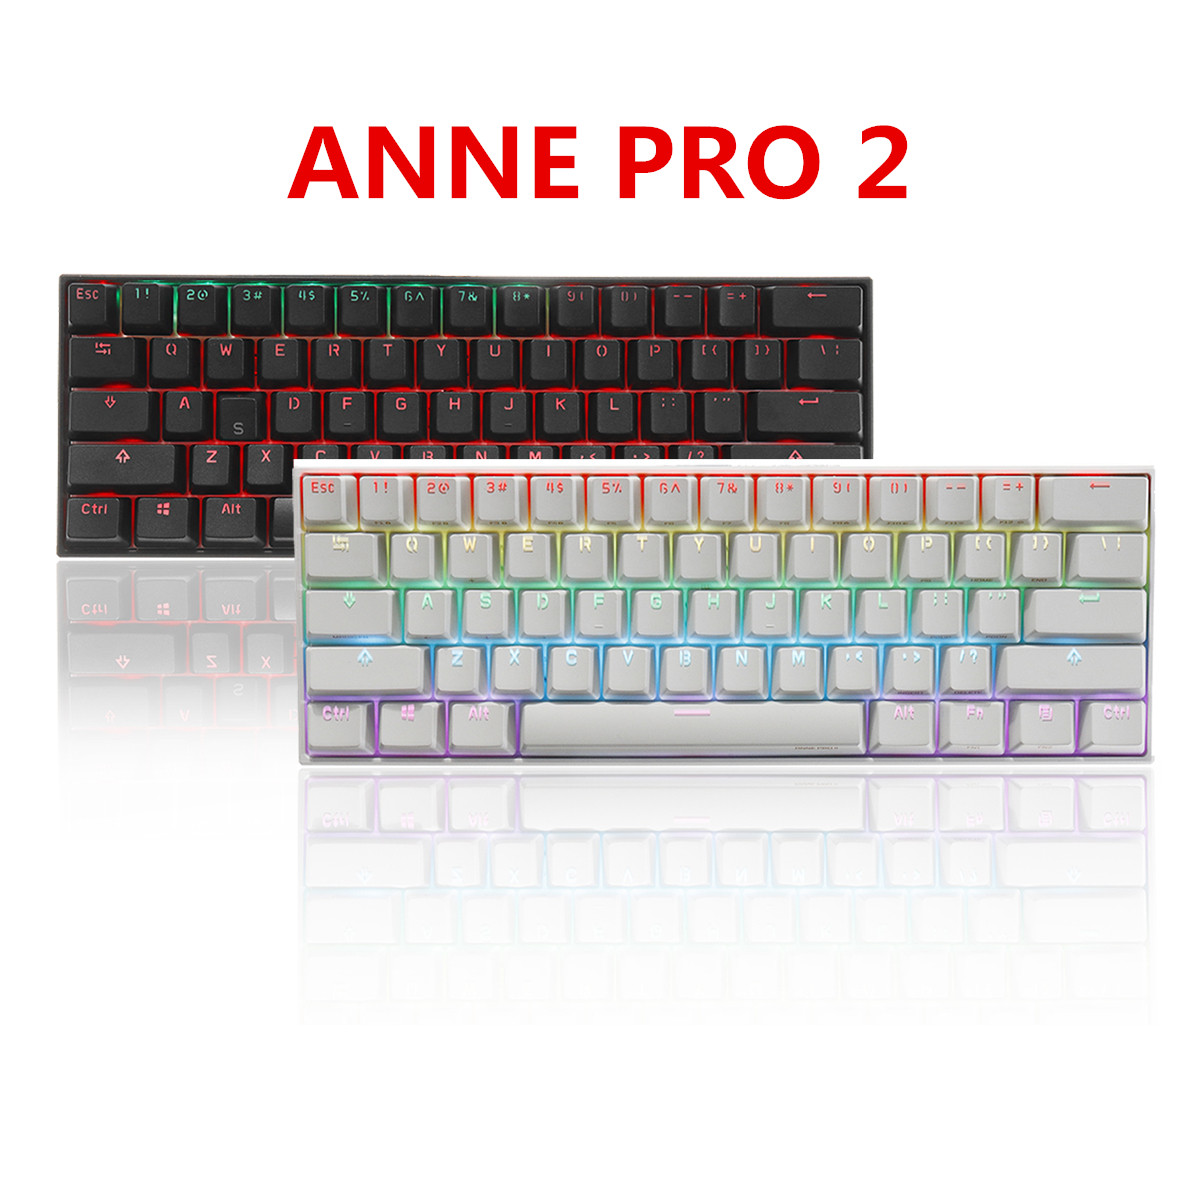 Permalink to ANNE Pro2 Mini Portable Wireless bluetooth 60% Mechanical Keyboard Red Blue Brown Switch Gaming Keyboard Detachable Cable